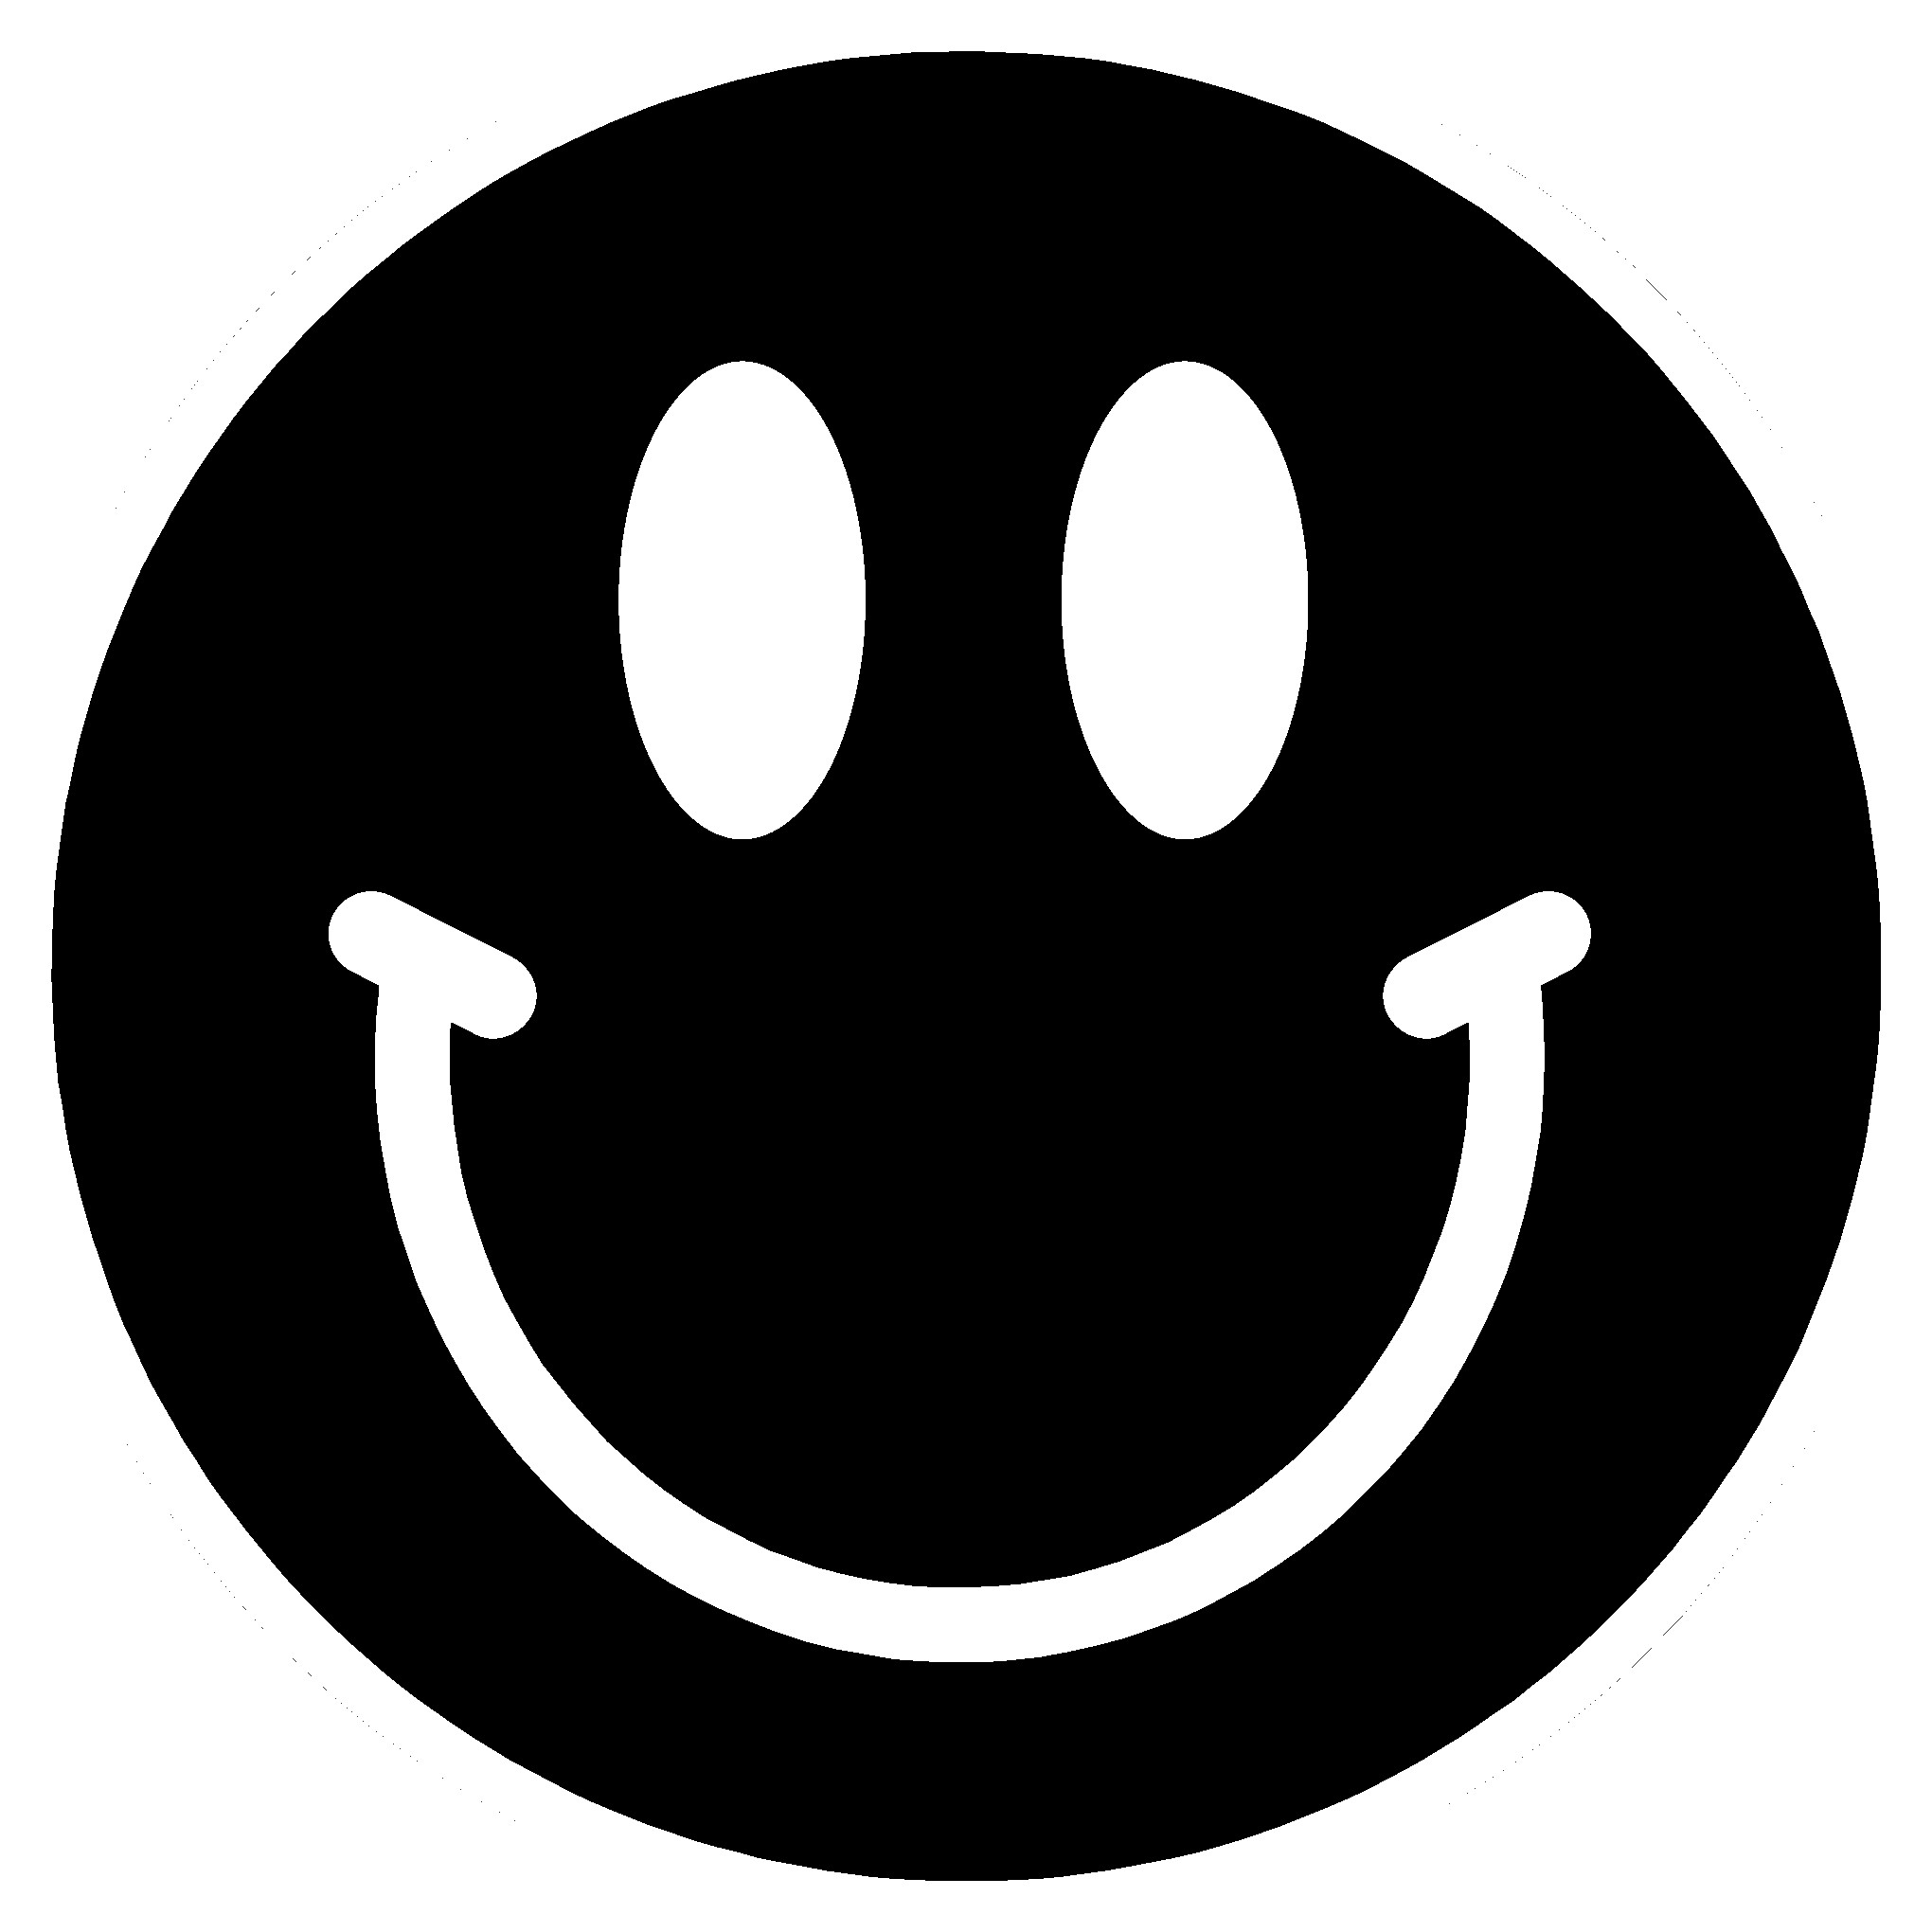 Smiley Face Black Backgrounds Wallpaper Cave Src Black And White Smiley Face 2040x2040 Download Hd Wallpaper Wallpapertip